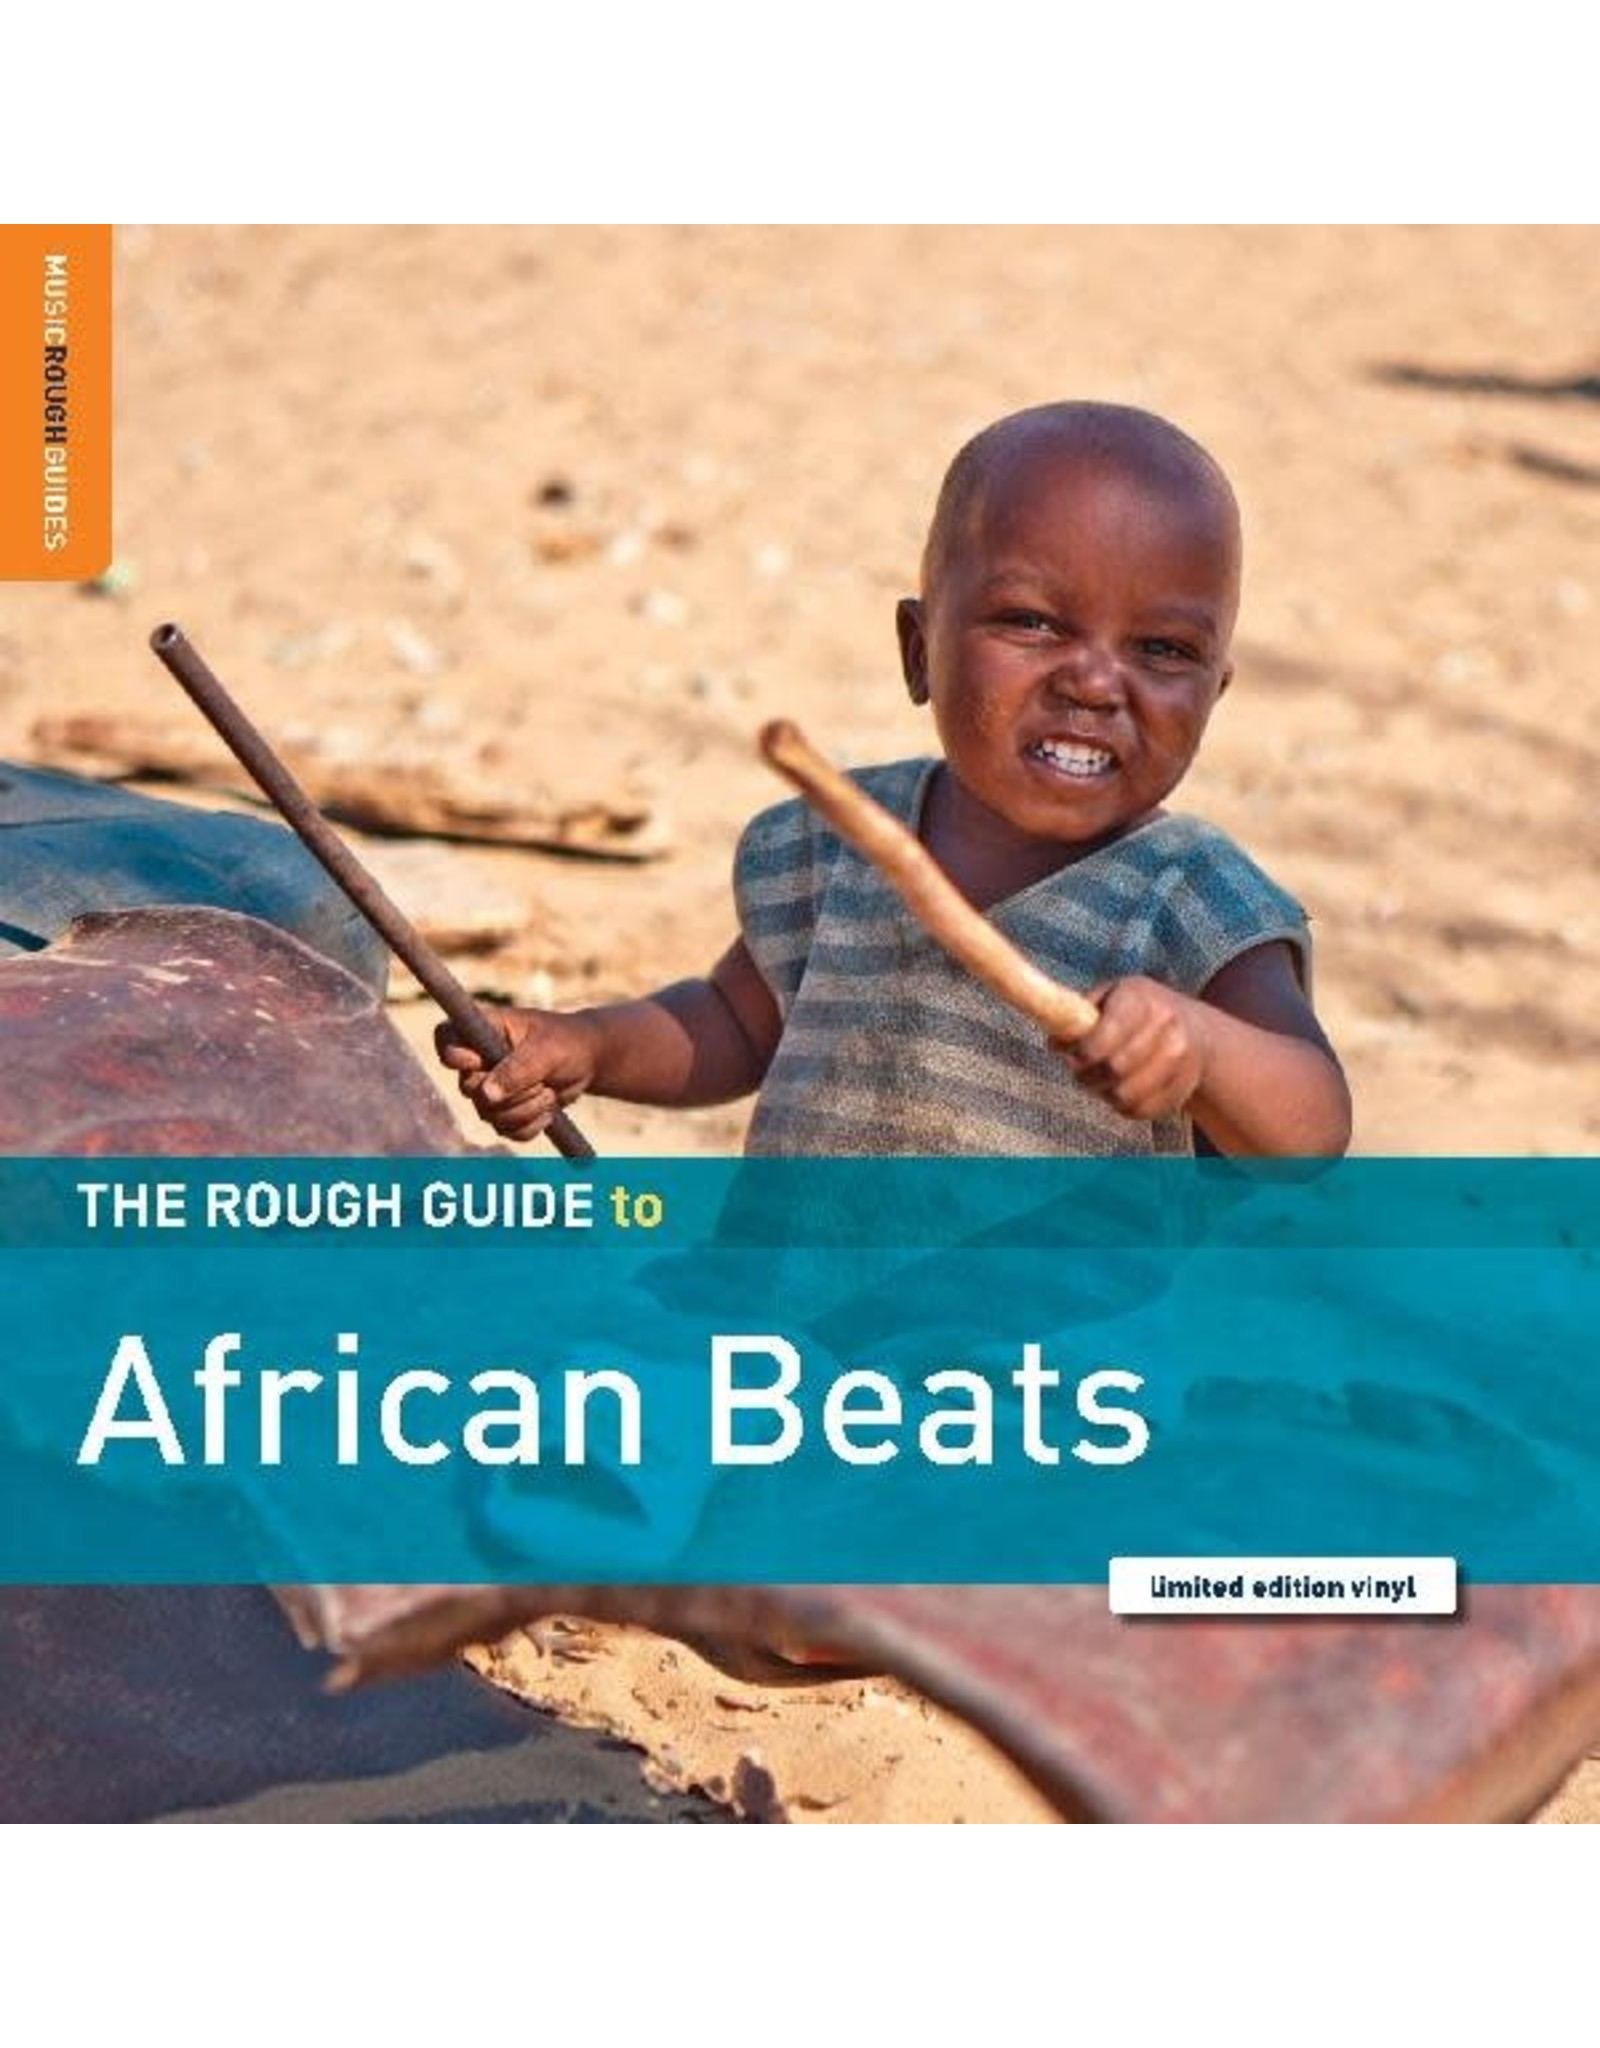 New Vinyl Various - Rough Guide To African Beats LP